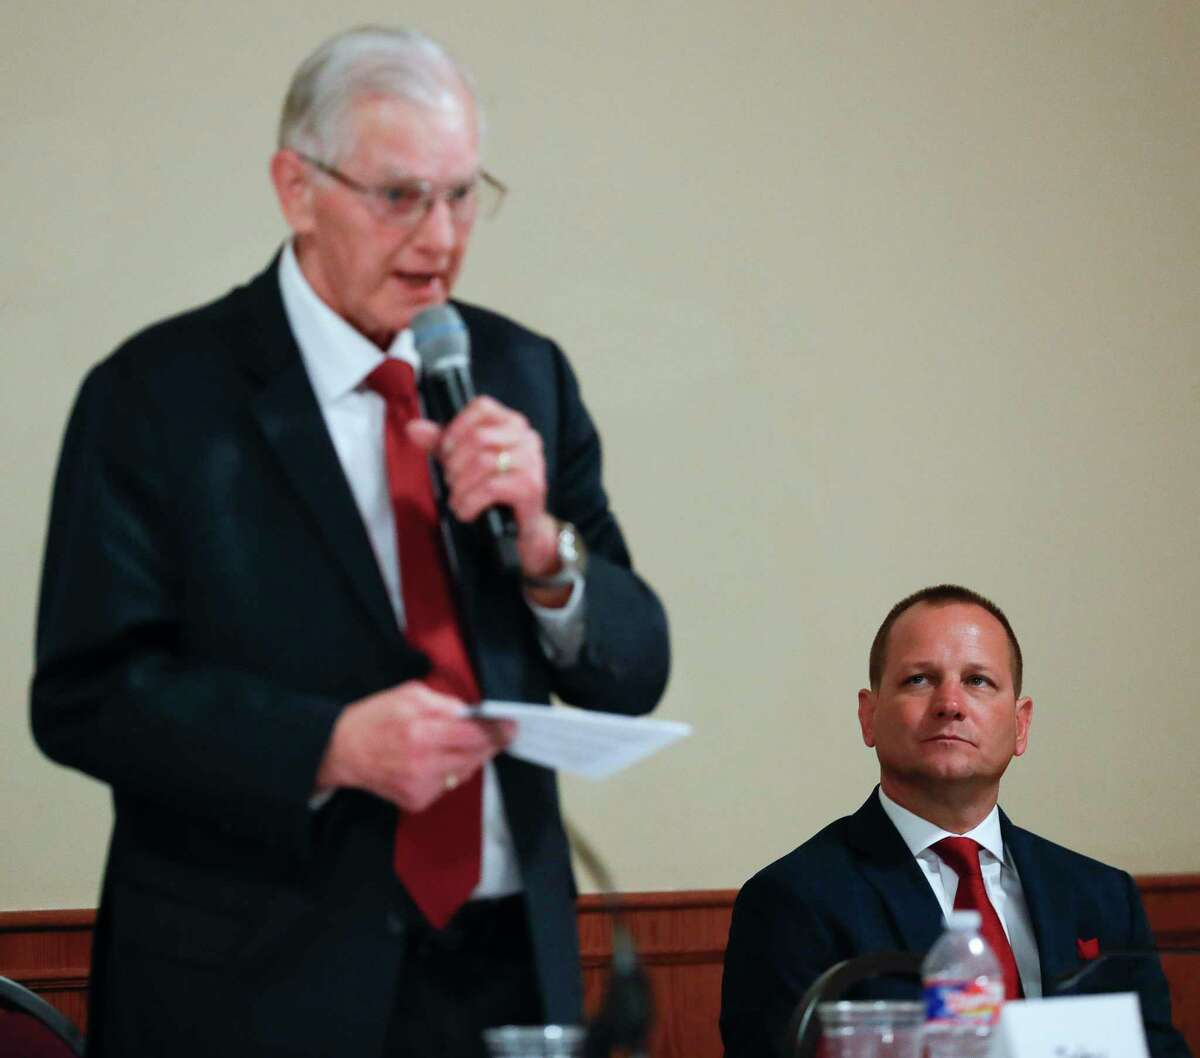 Conroe mayoral candidate Jody Czajkoski, right, listens as incumbent Toby Powell speaks during a Conroe City Council forum at First Baptist Church, Thursday, March 5, 2020, in Conroe. Candidates for mayor, City council Place 1, Place 2 and Place 5 attended the event hosted by the Conroe/Lake Conroe Area Chamber of Commerce.